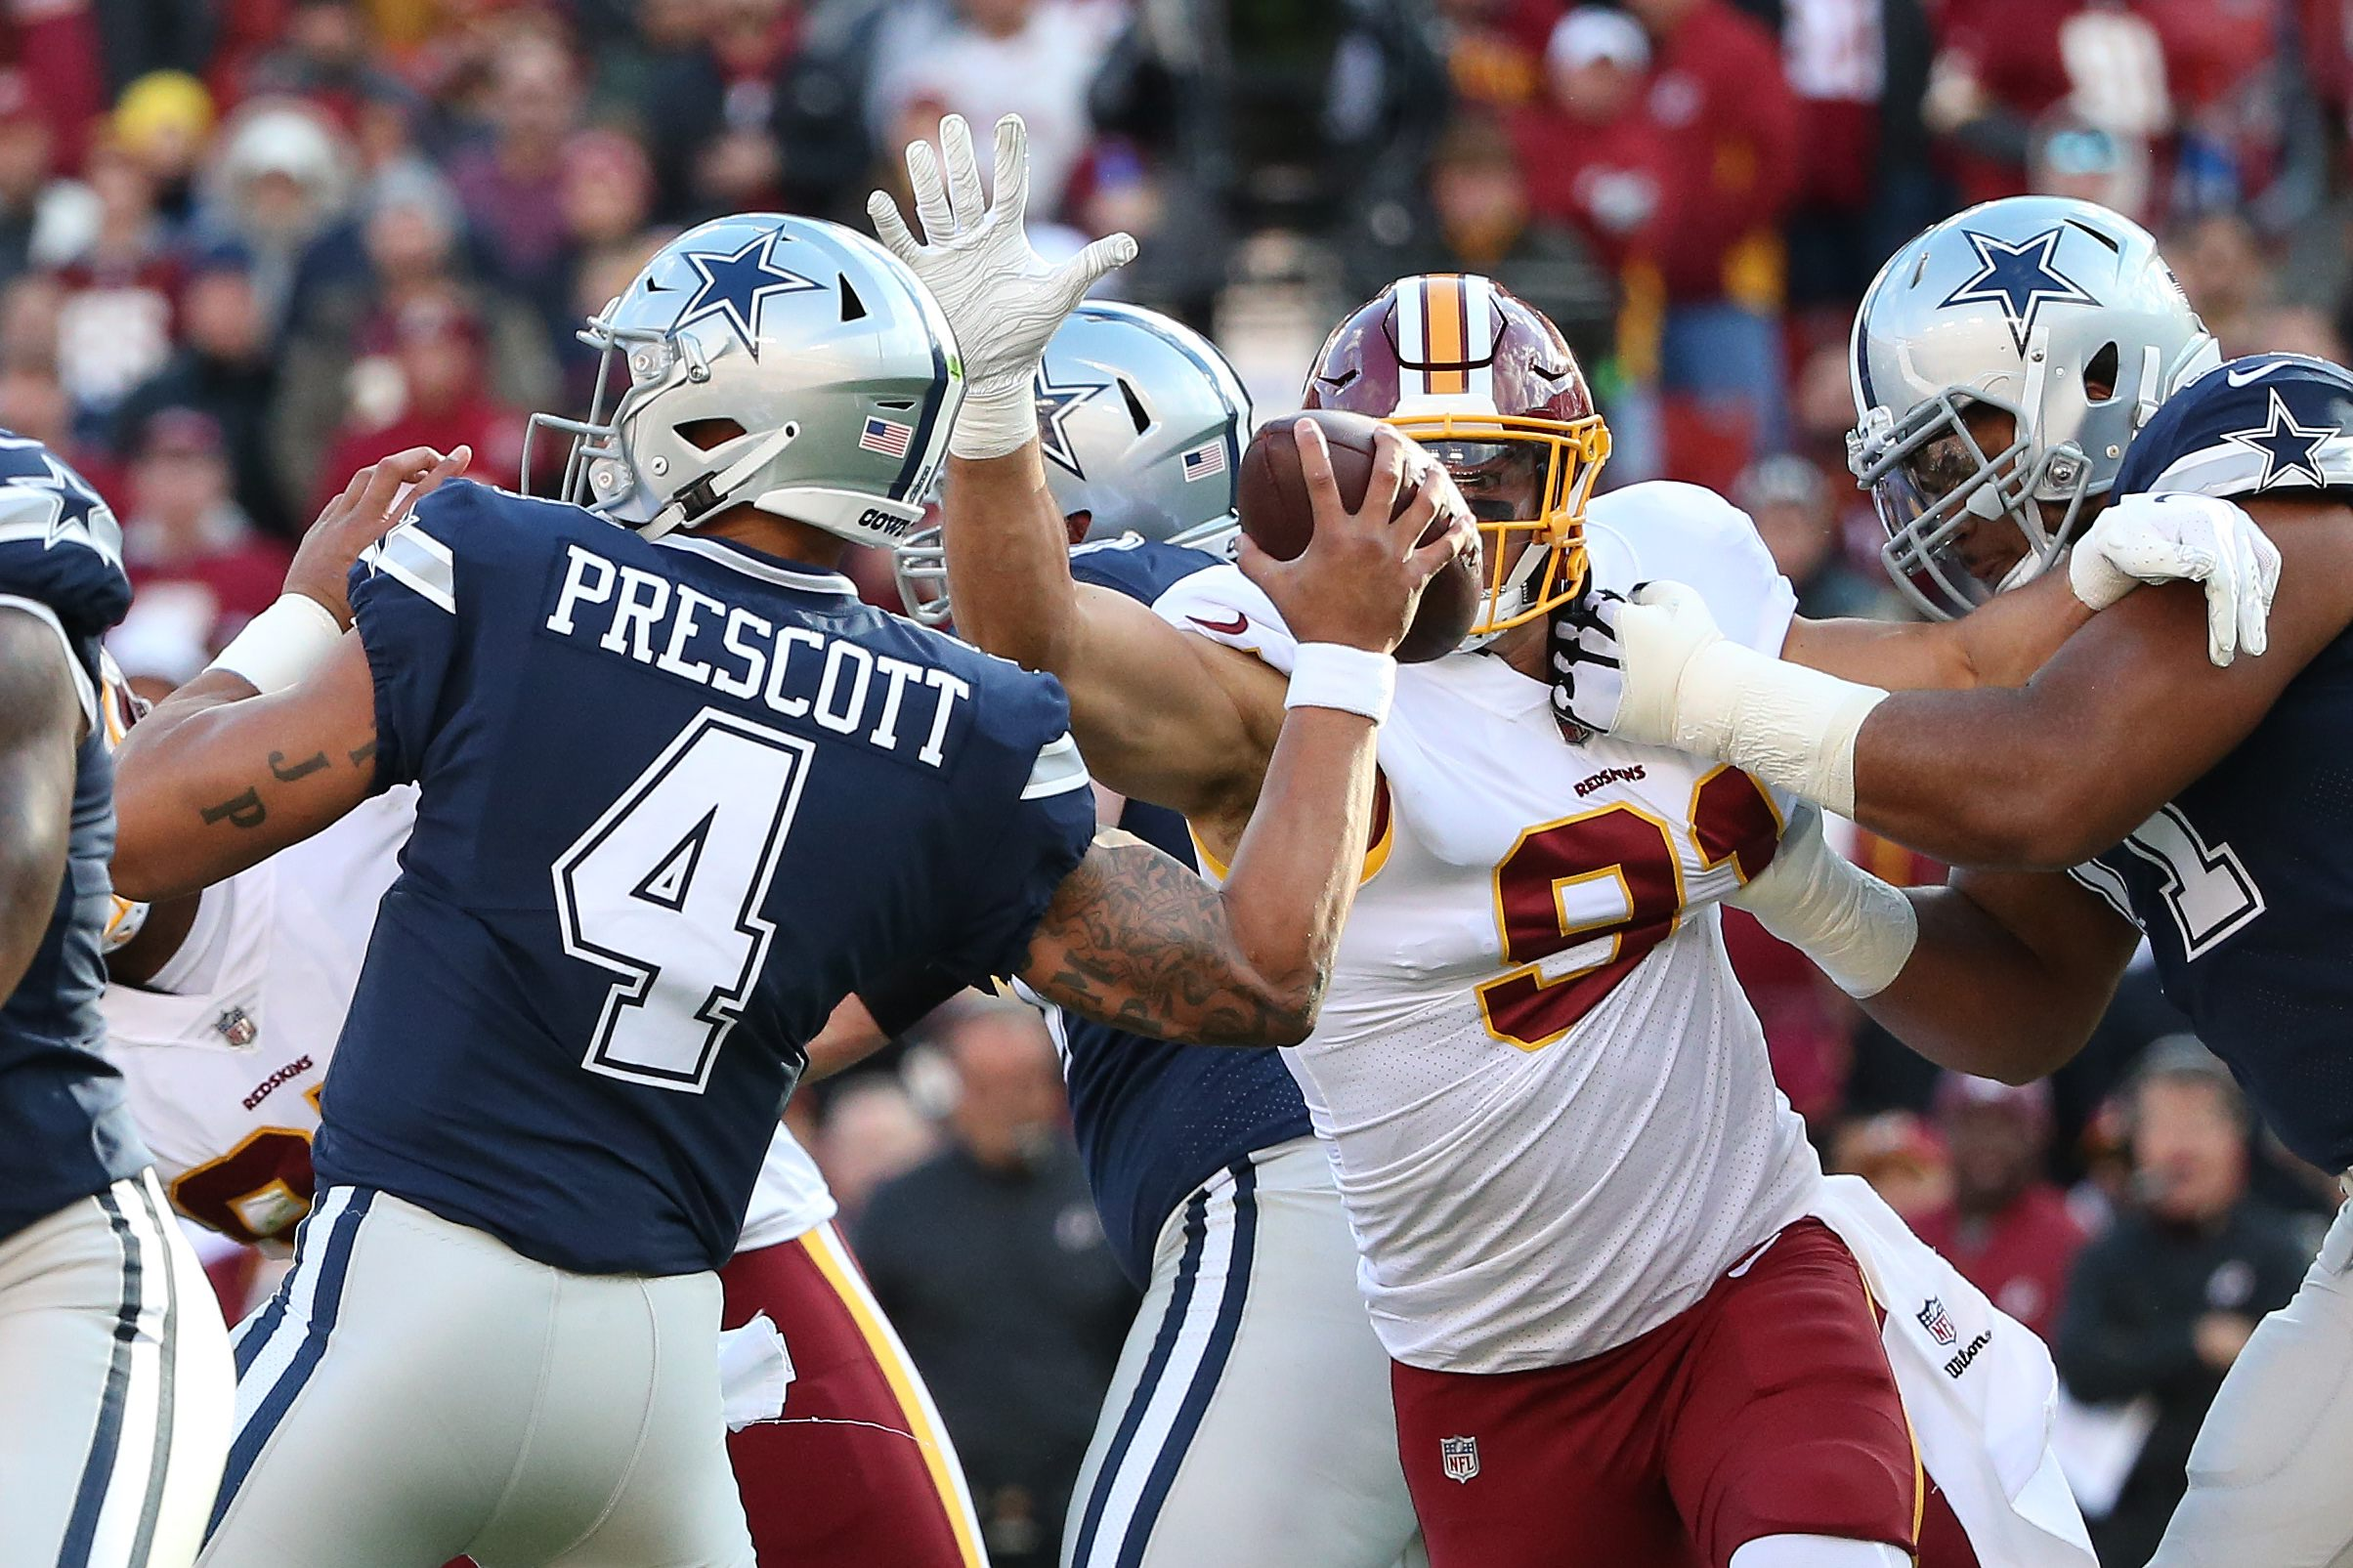 Mauriciorodriguez_game-notes_takeaway-tuesday-cowboys-offense-coaches-have-a-ways-to-go-still